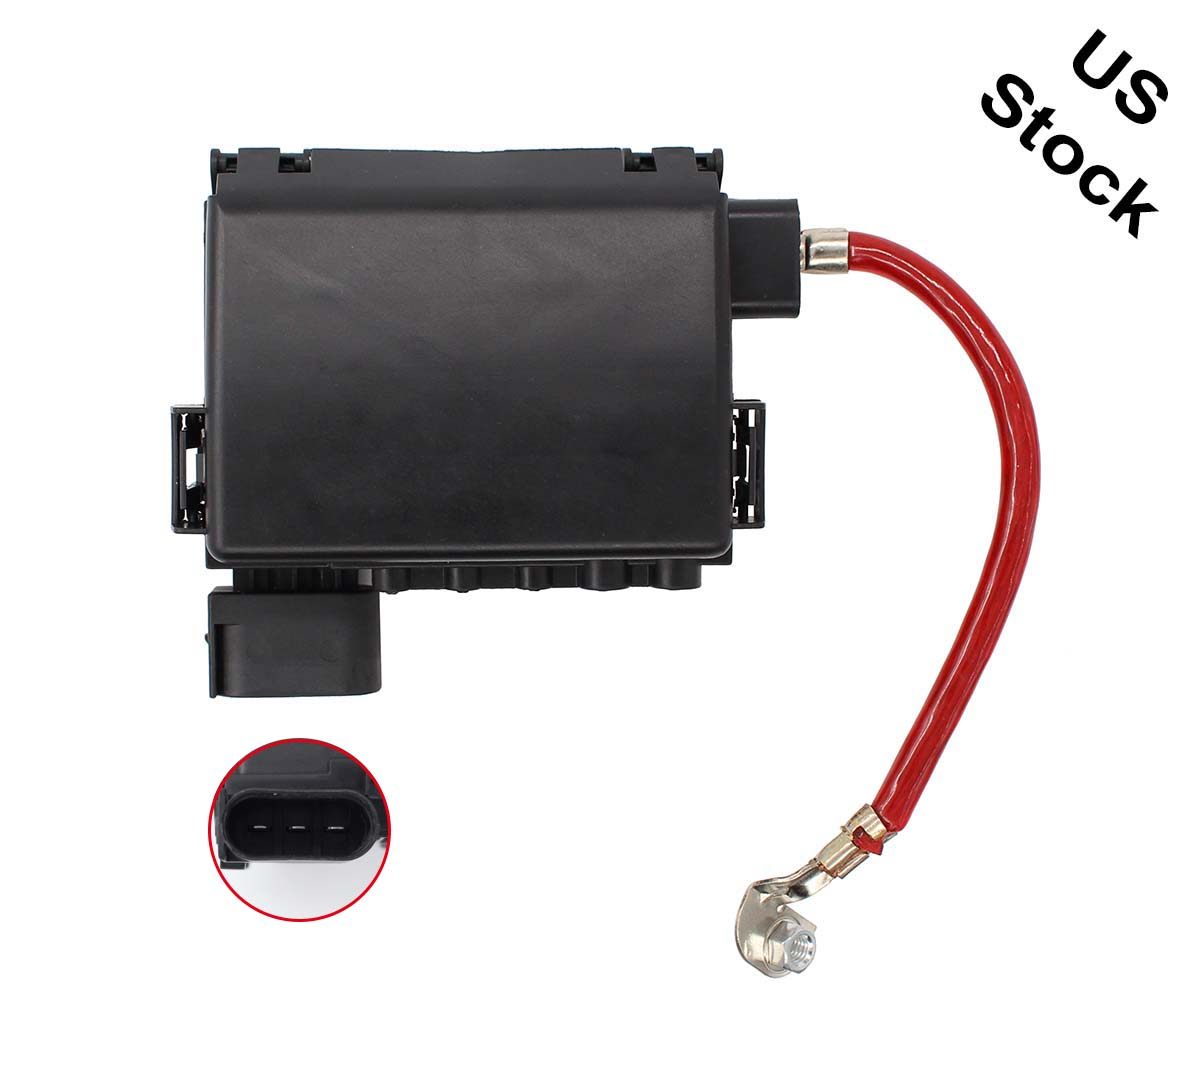 Fuse Box Battery Terminal 1j0937550a For 1999 2004 Vw Jetta Golf Mk4 Beetle New